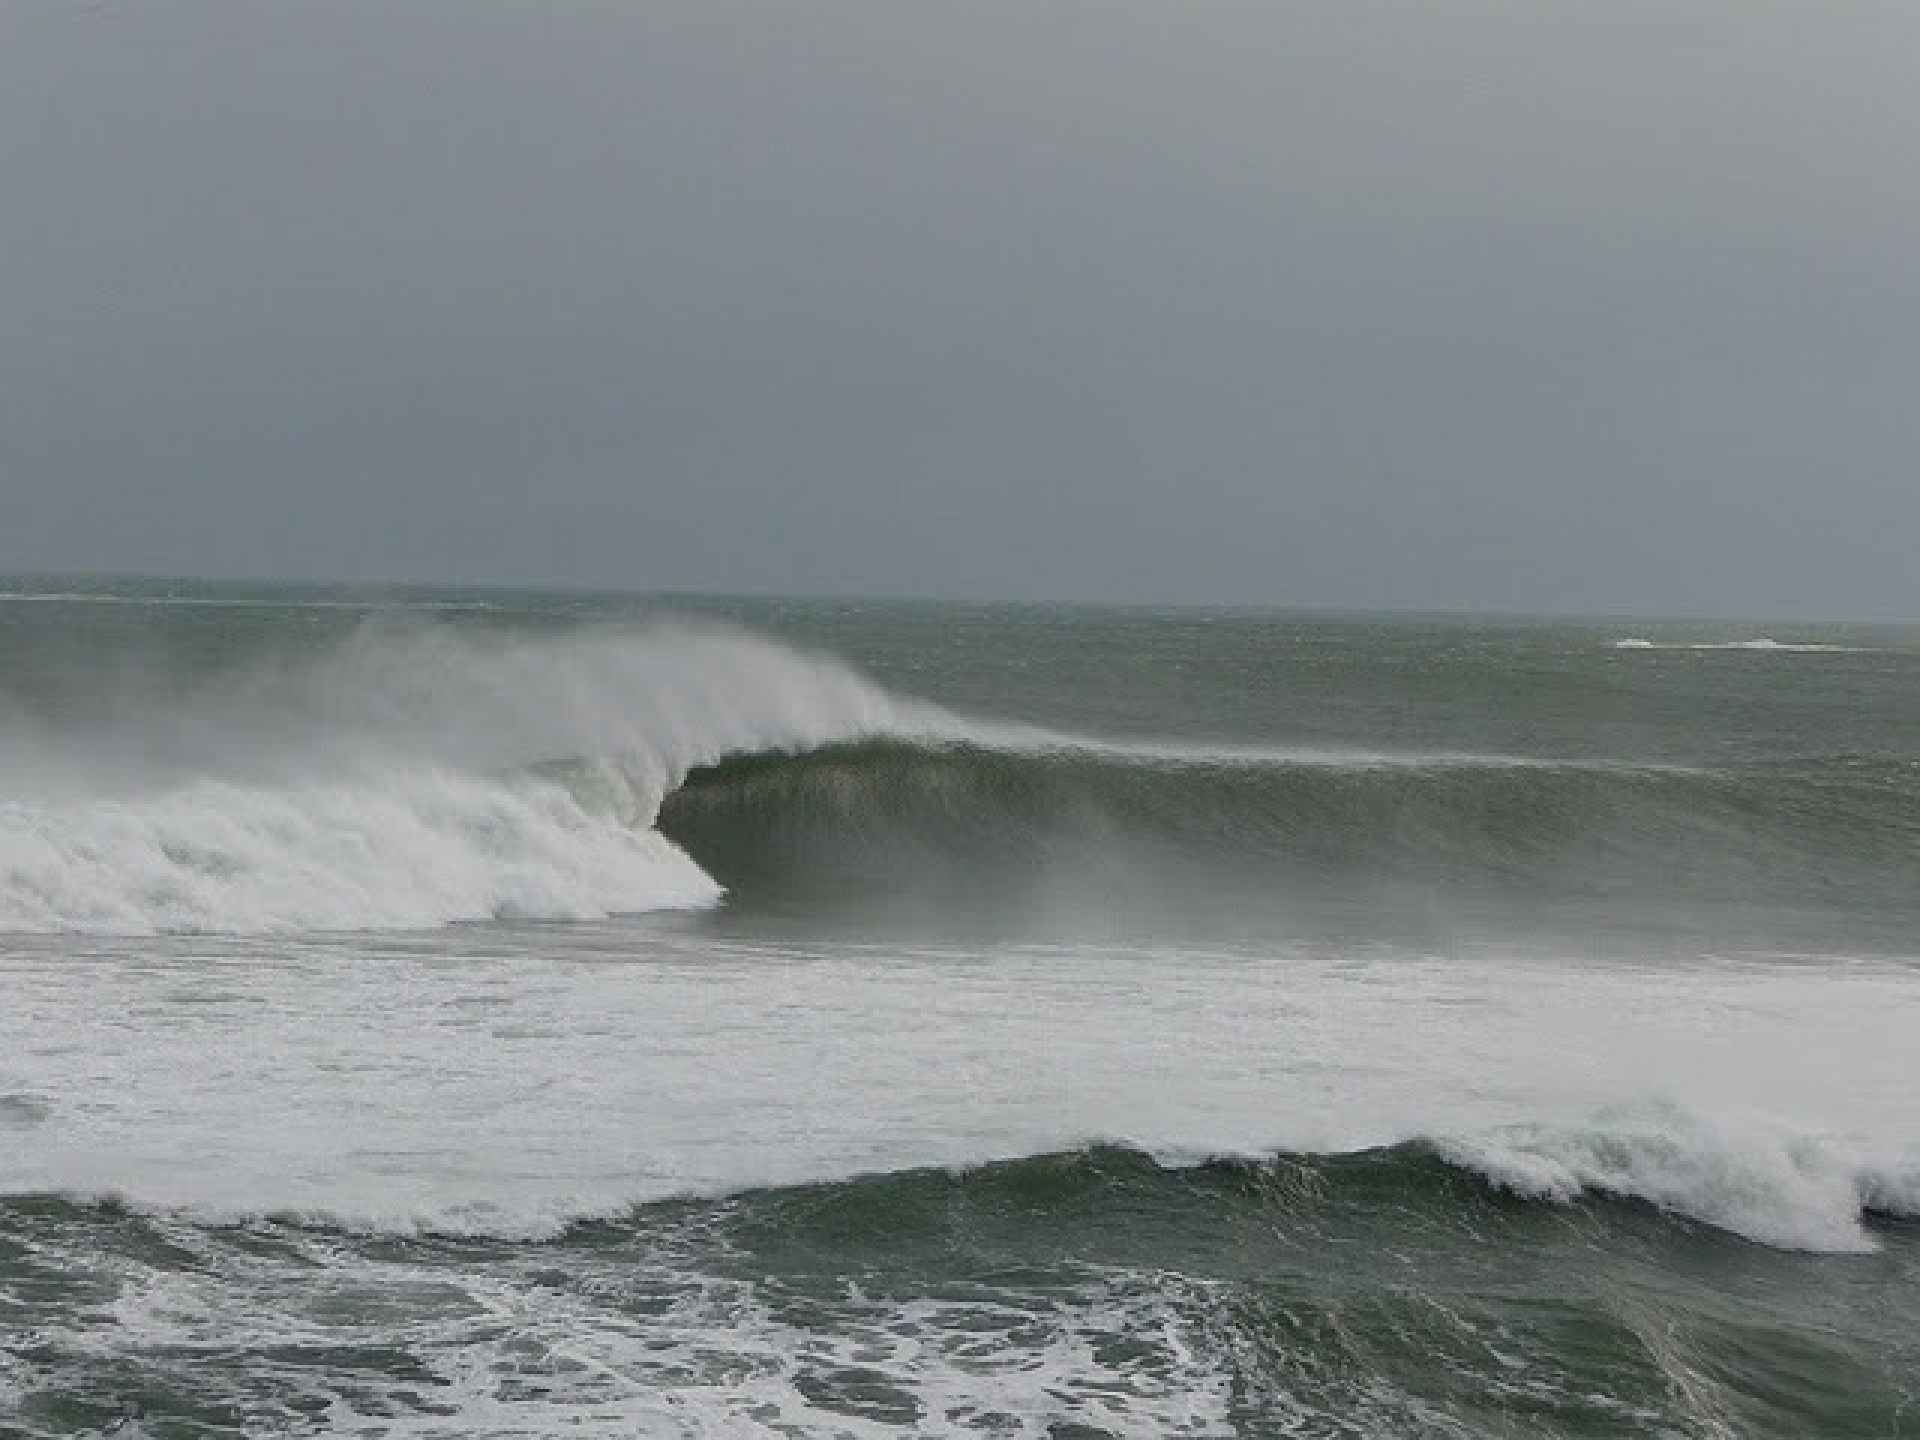 ENRIQUE LABORDE's photo of Mundaka